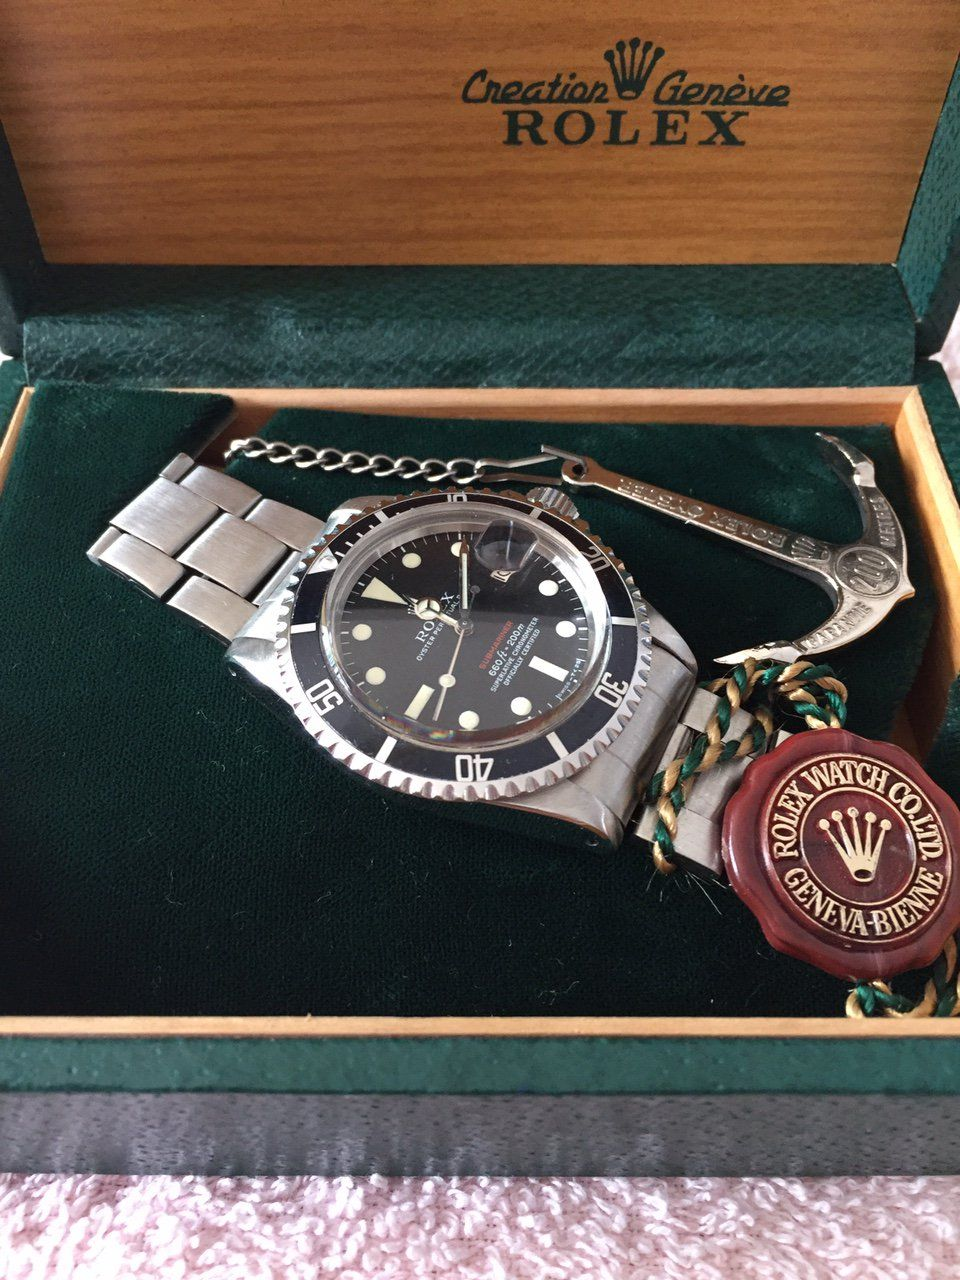 1972 1680 In Box Rolex Forums Rolex Watch Forum Rolex Watches Rolex Luxury Watches For Men